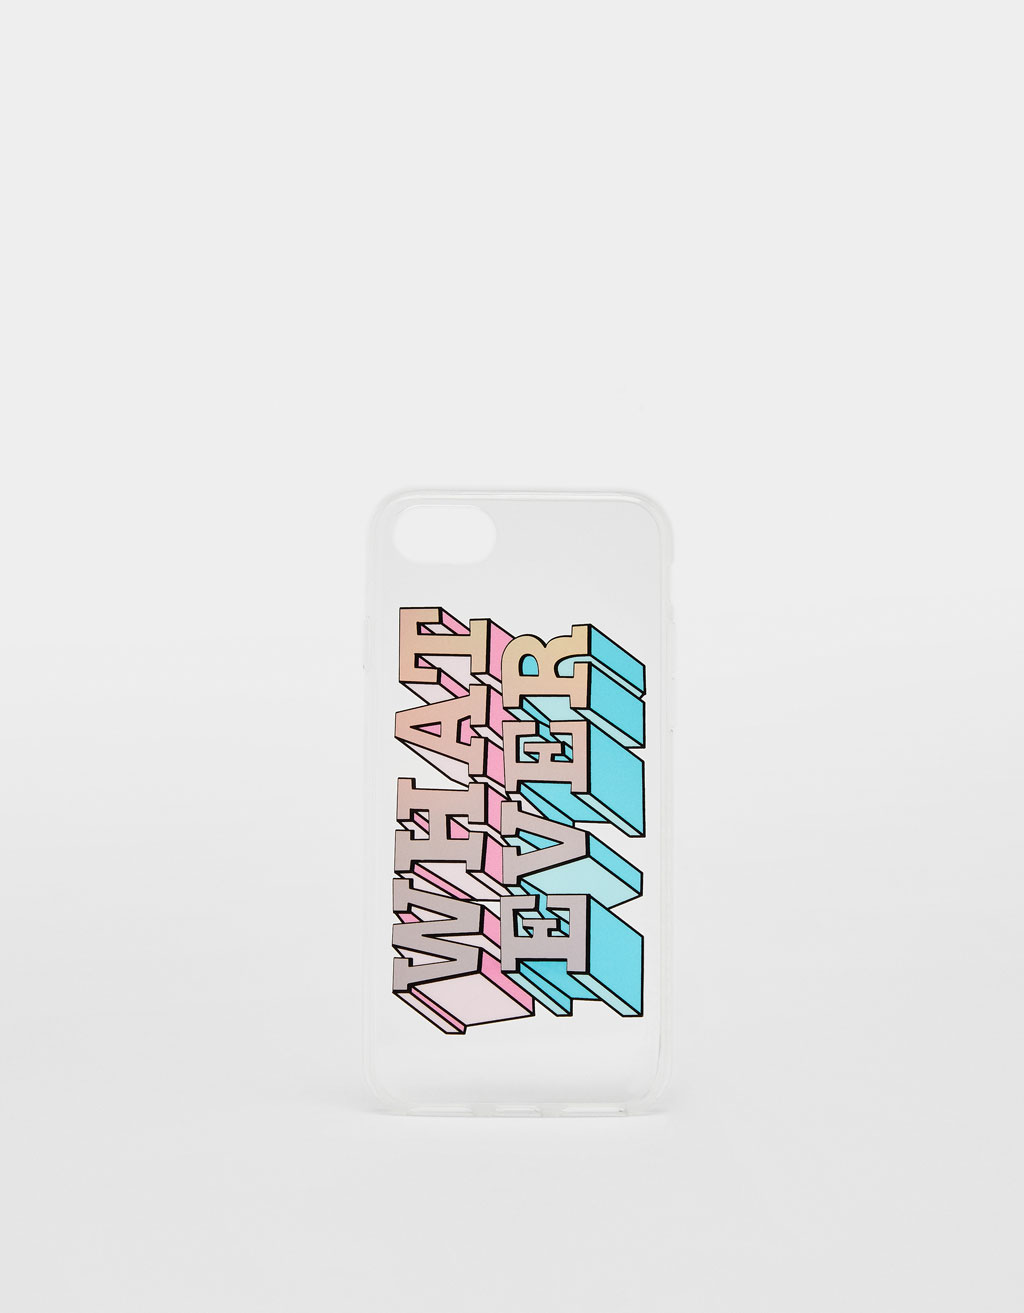 Cover What ever iPhone 6 / 6S / 7 / 8